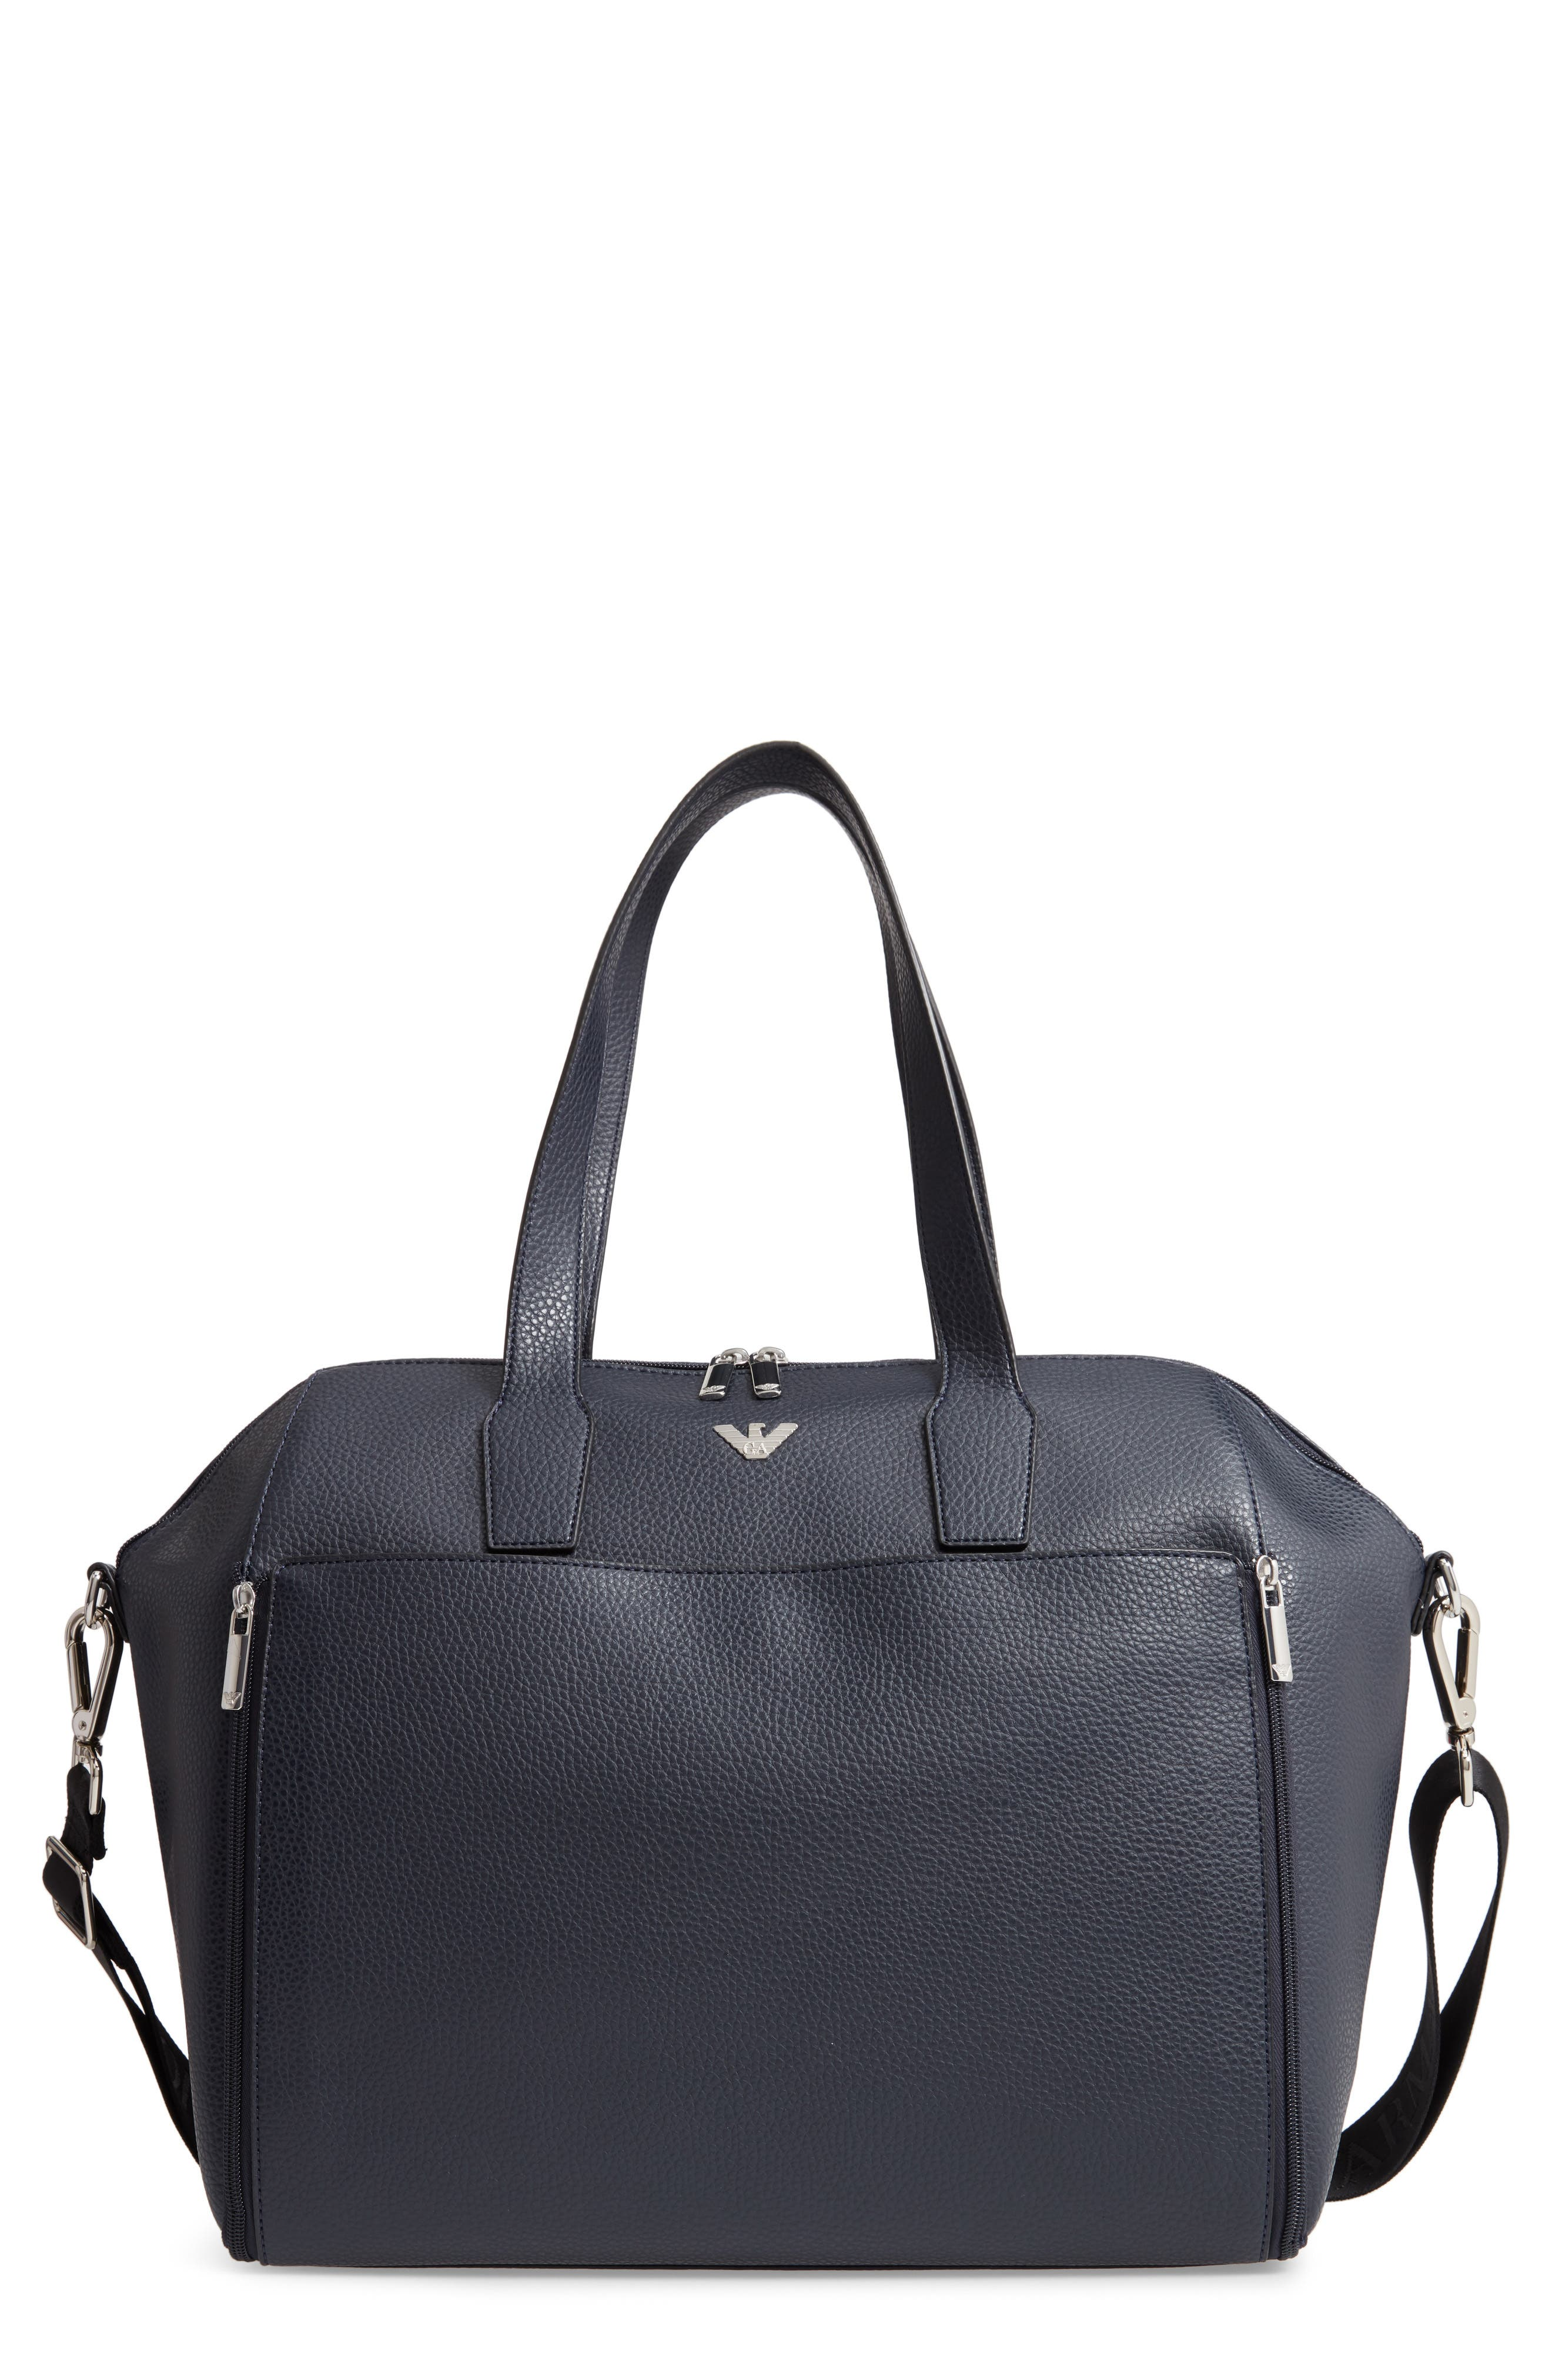 Faux Leather Diaper Bag,                         Main,                         color, SOLID BLUE NAVY